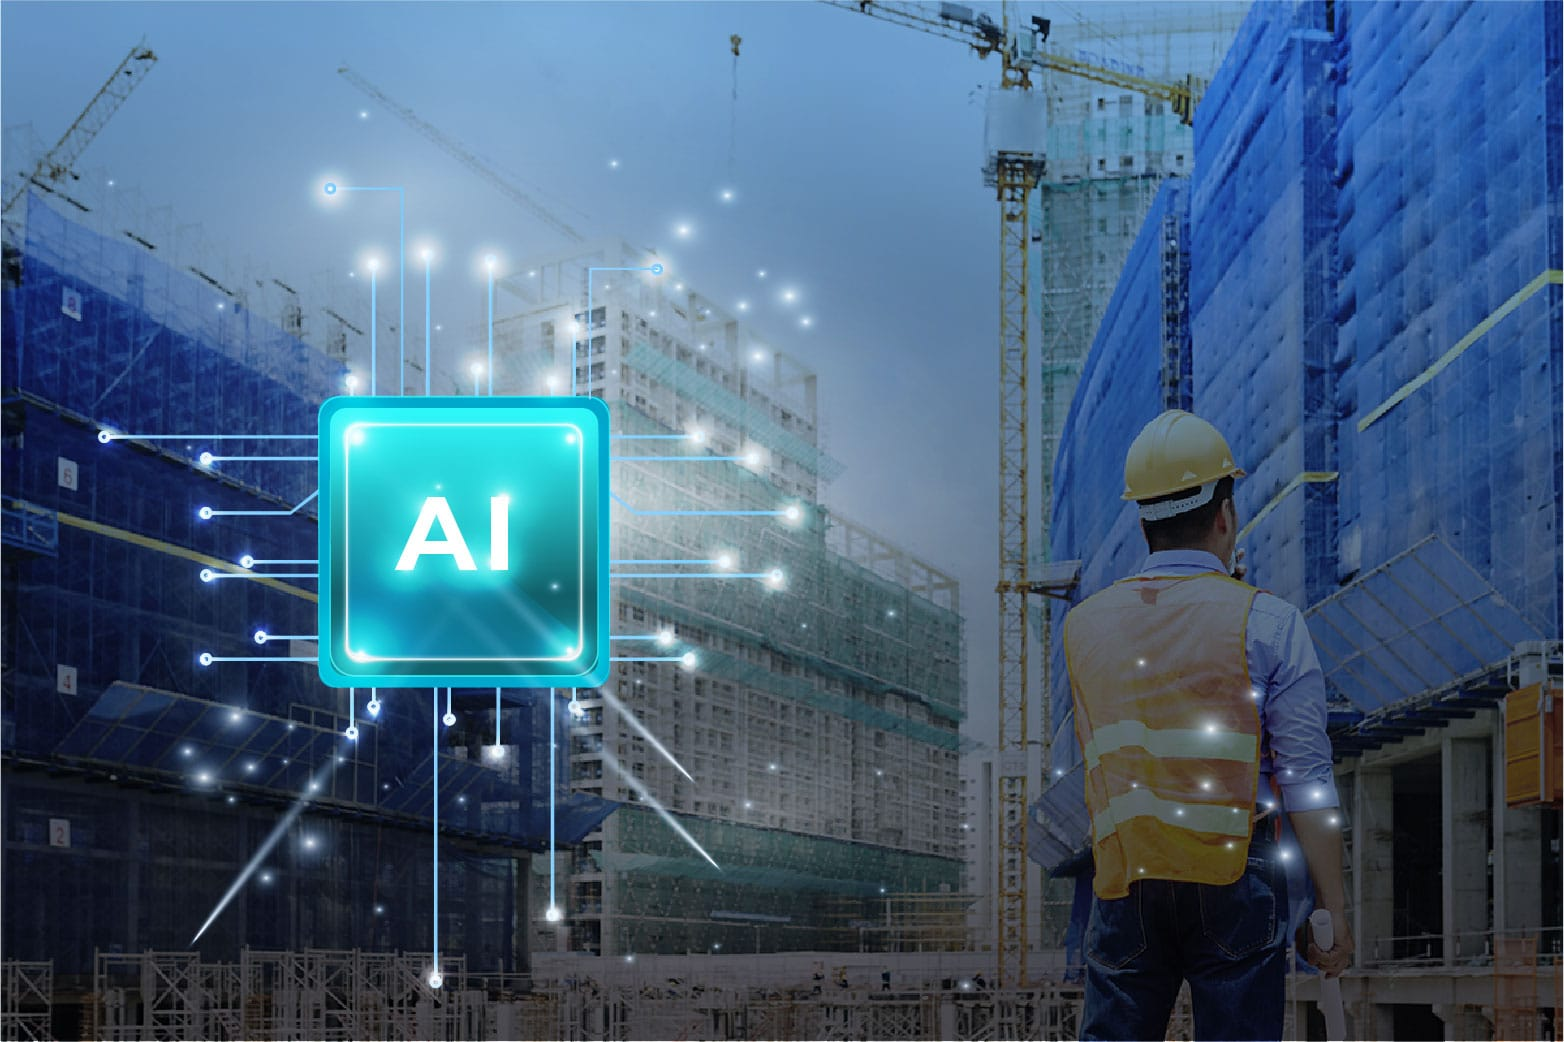 AI and construction industry